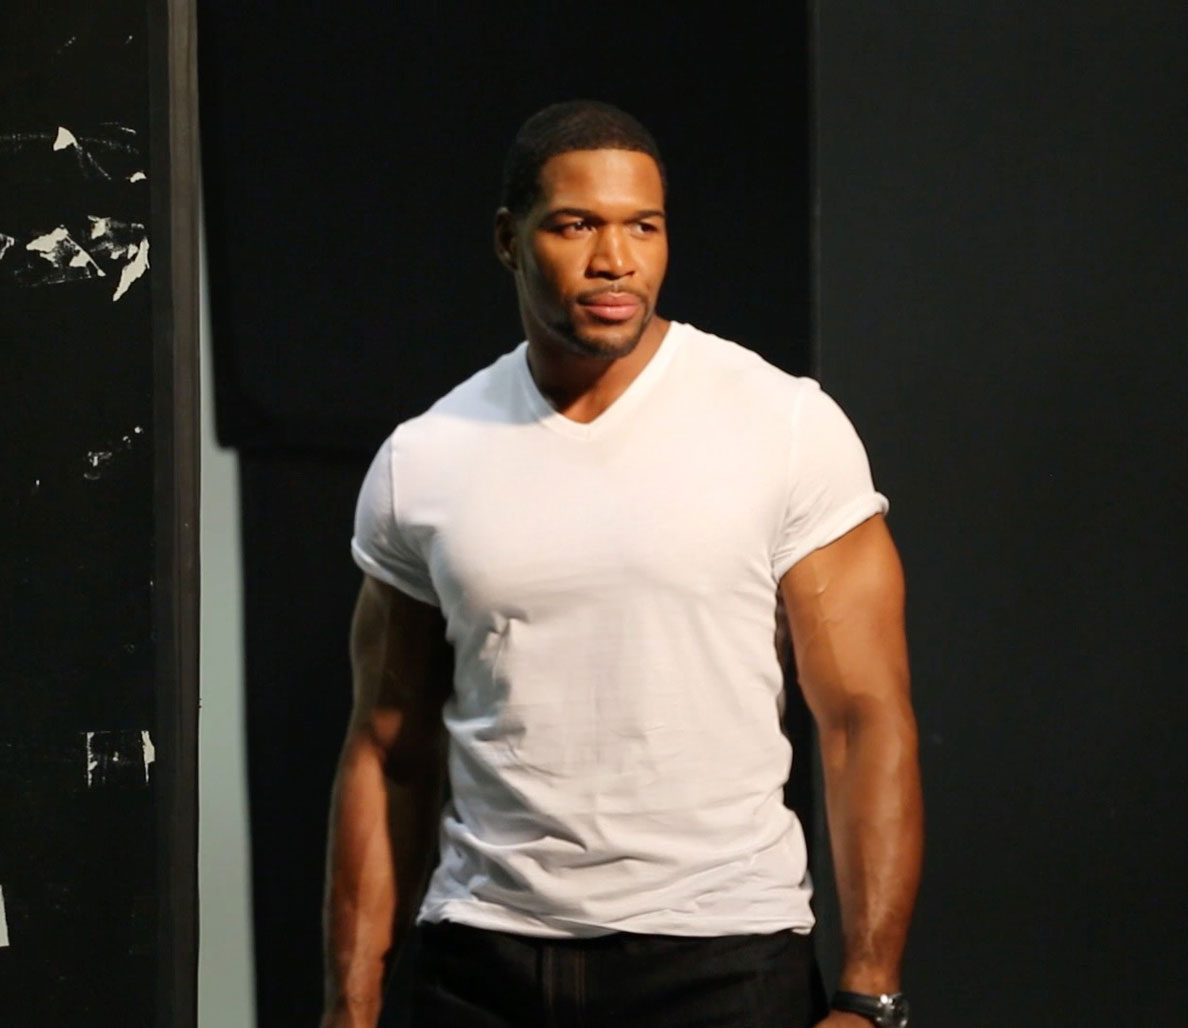 strahan men Men's mens clothing furnishings jc penney expands michael strahan collection to shoes the footwear is available in 17 styles and is launching in stores and online this week by jean .